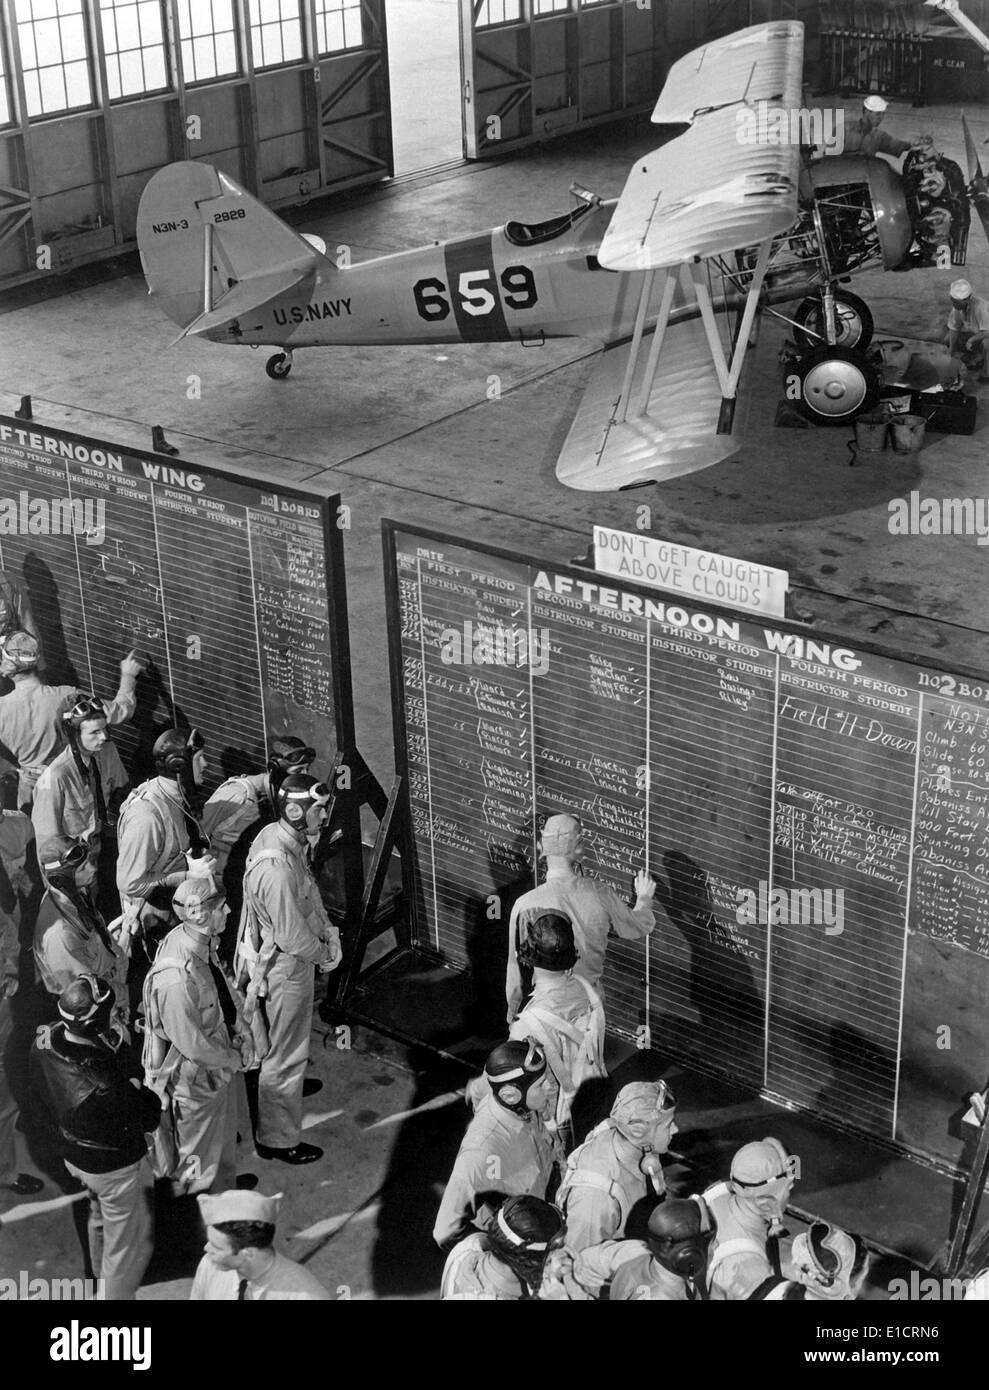 Aviation cadets check flight boards for last minute instructions at Corpus Christi, Texas. World War 2, Nov. 1942. - Stock Image